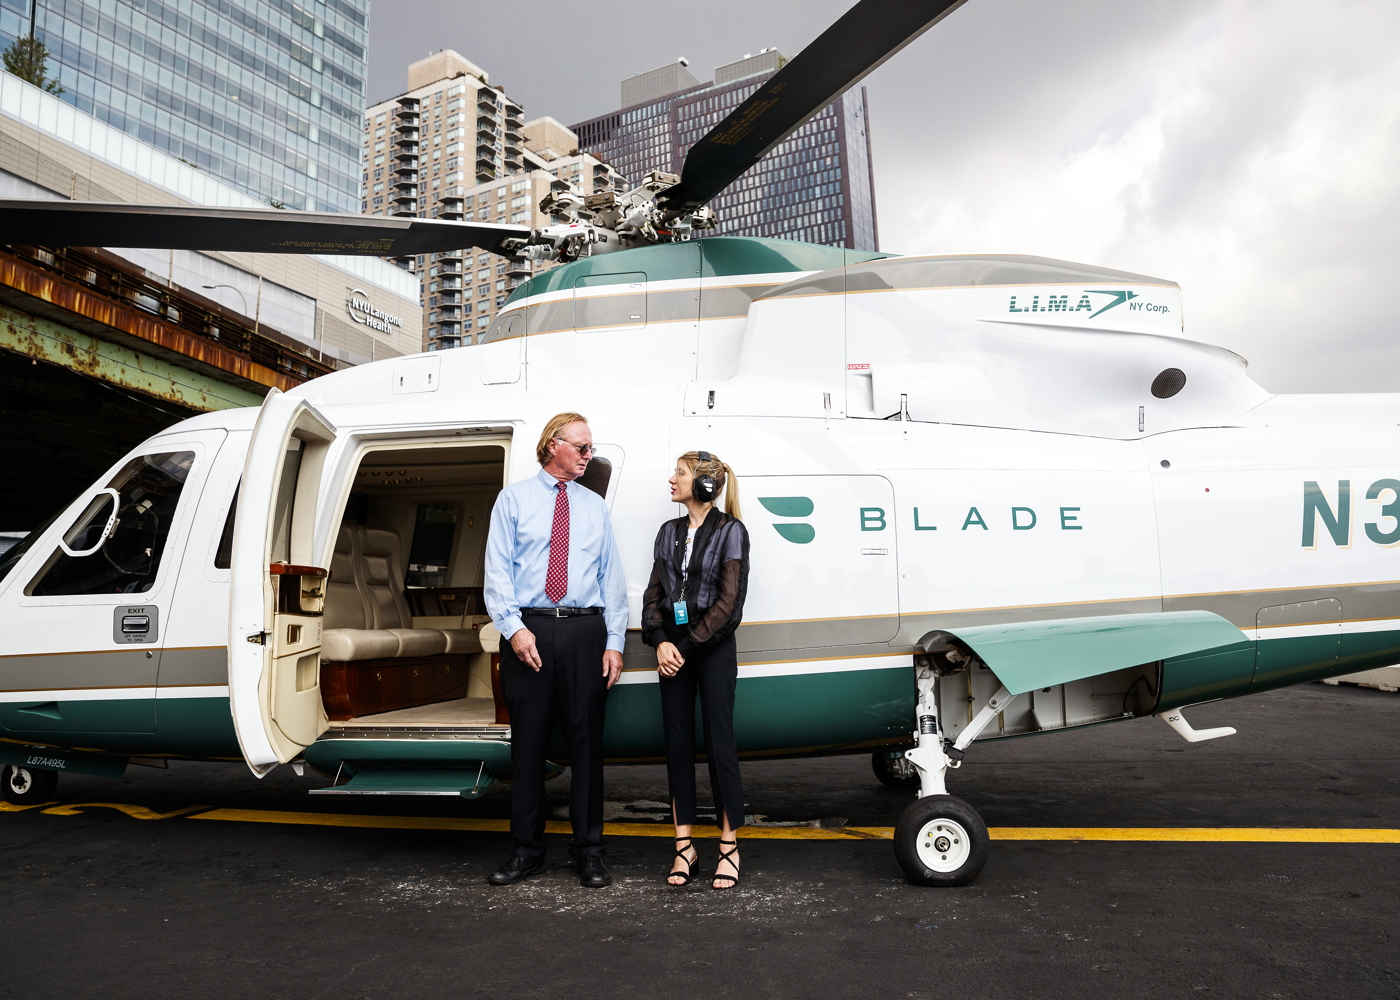 Blade helicopter ridesharing